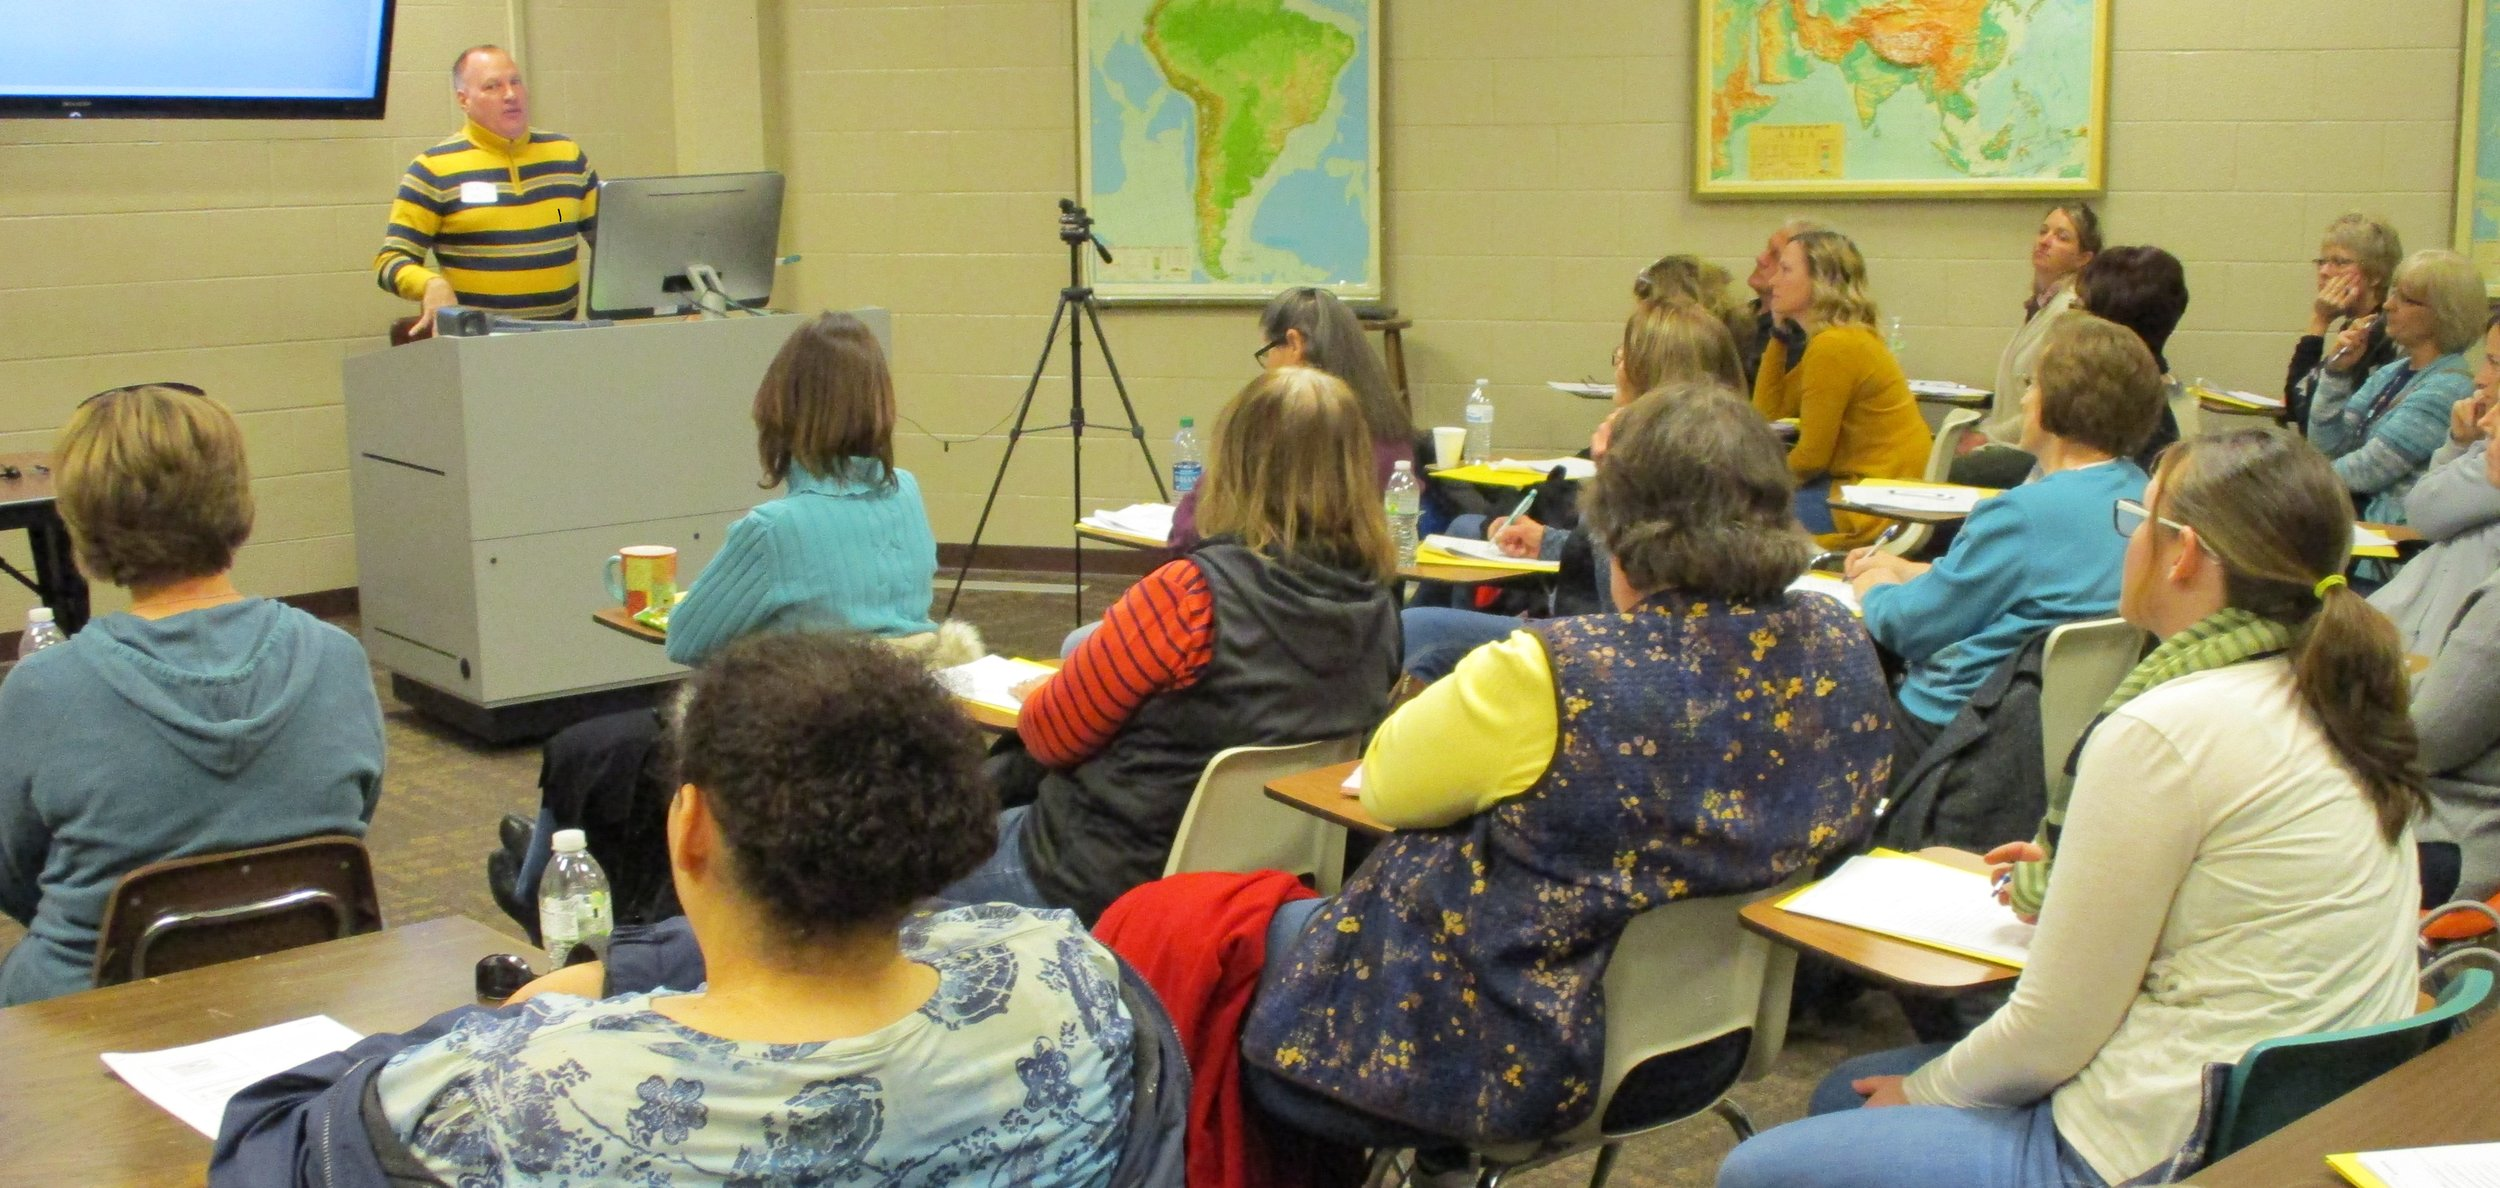 Autism Disorder Workshop main speaker Dr. Jim Ball explains different approaches when working with Autistic Children at the April 7, 2018 workshop.